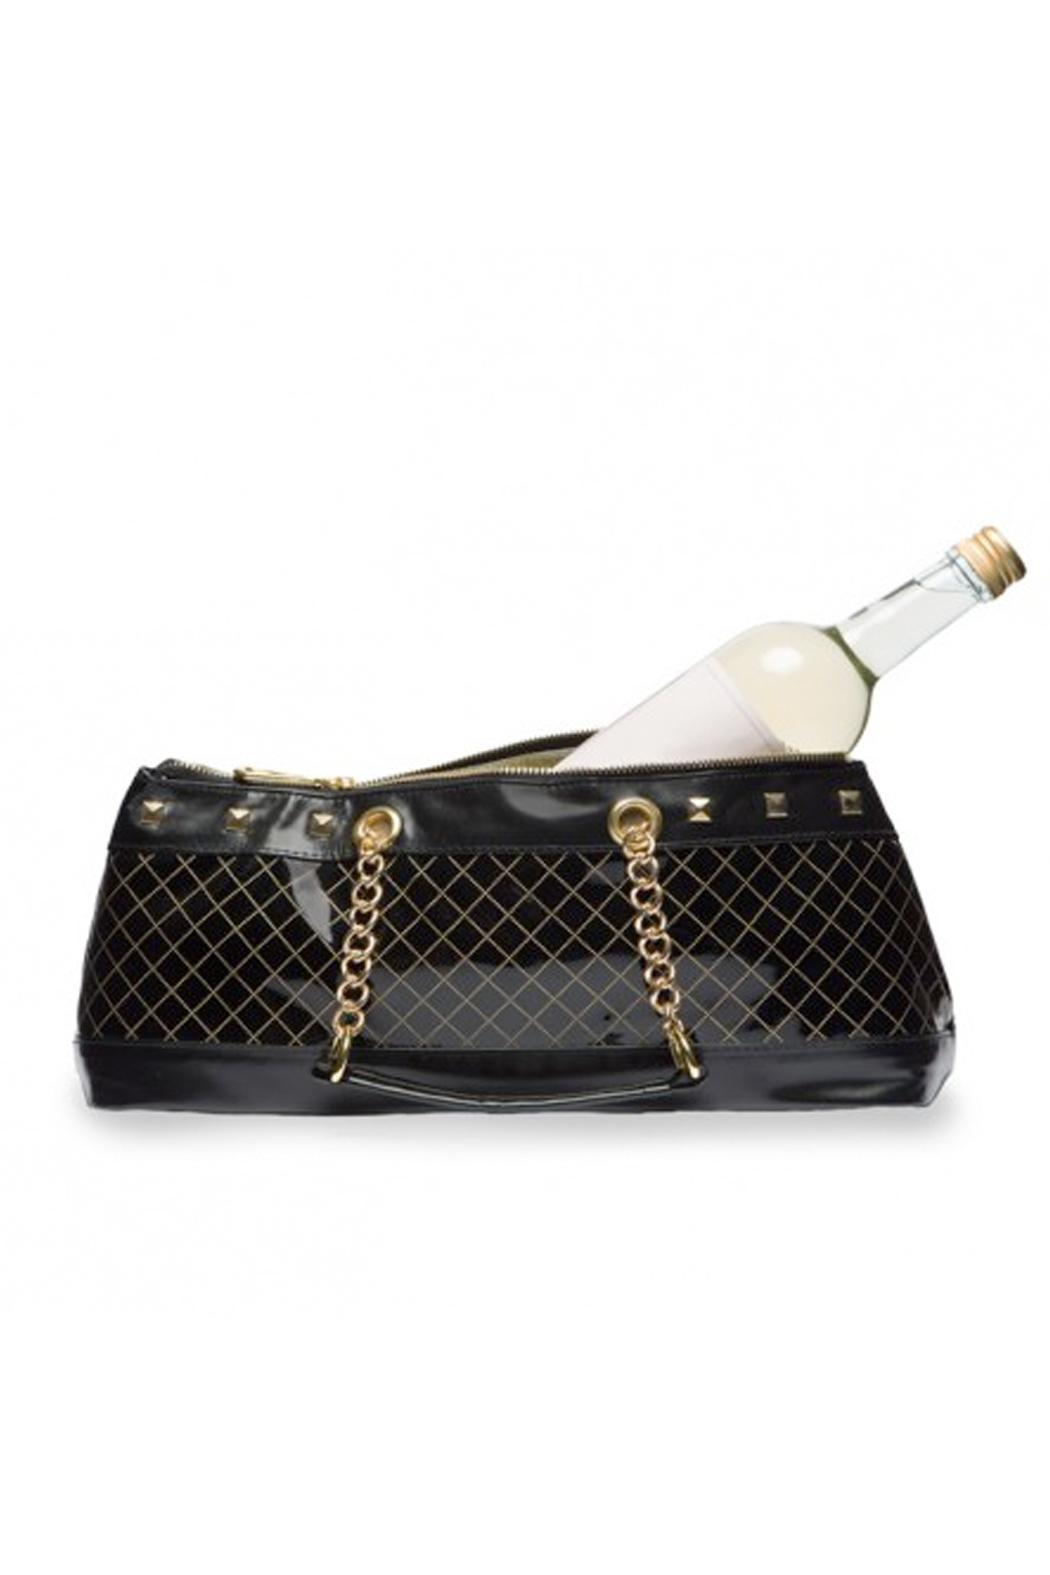 Wild Eye Designs Insulated Wine Purse From Orange County